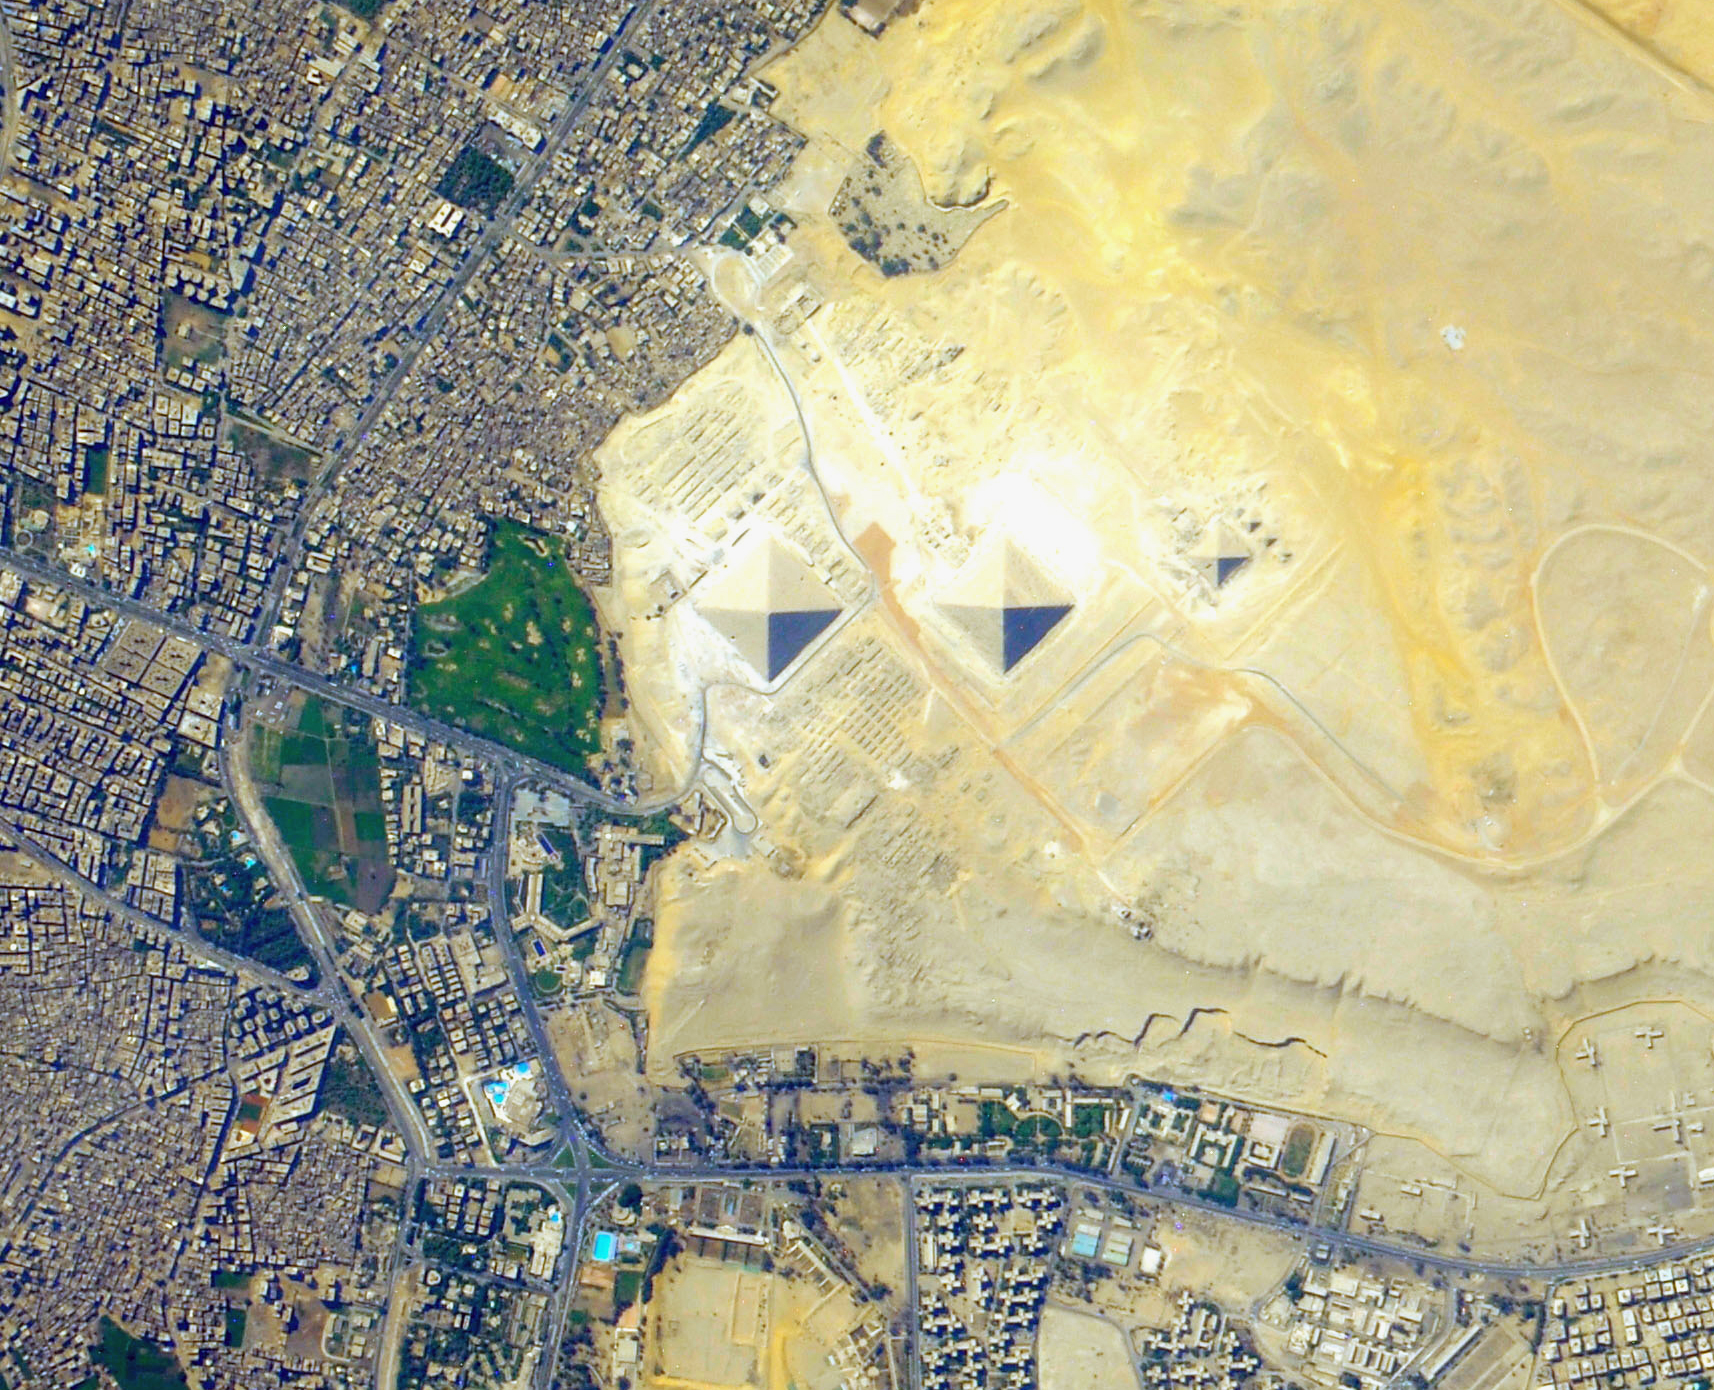 The Pyramids of Giza, as seen from the International Space Station. The pyramids are so large that they're clearly visible in a photograph taken with a hand-held consumer level digital camera from space. Their size is also overwhelming compared to the structures of modern Cairo. Public domain image courtesy of NASA / ISS Crew 032.